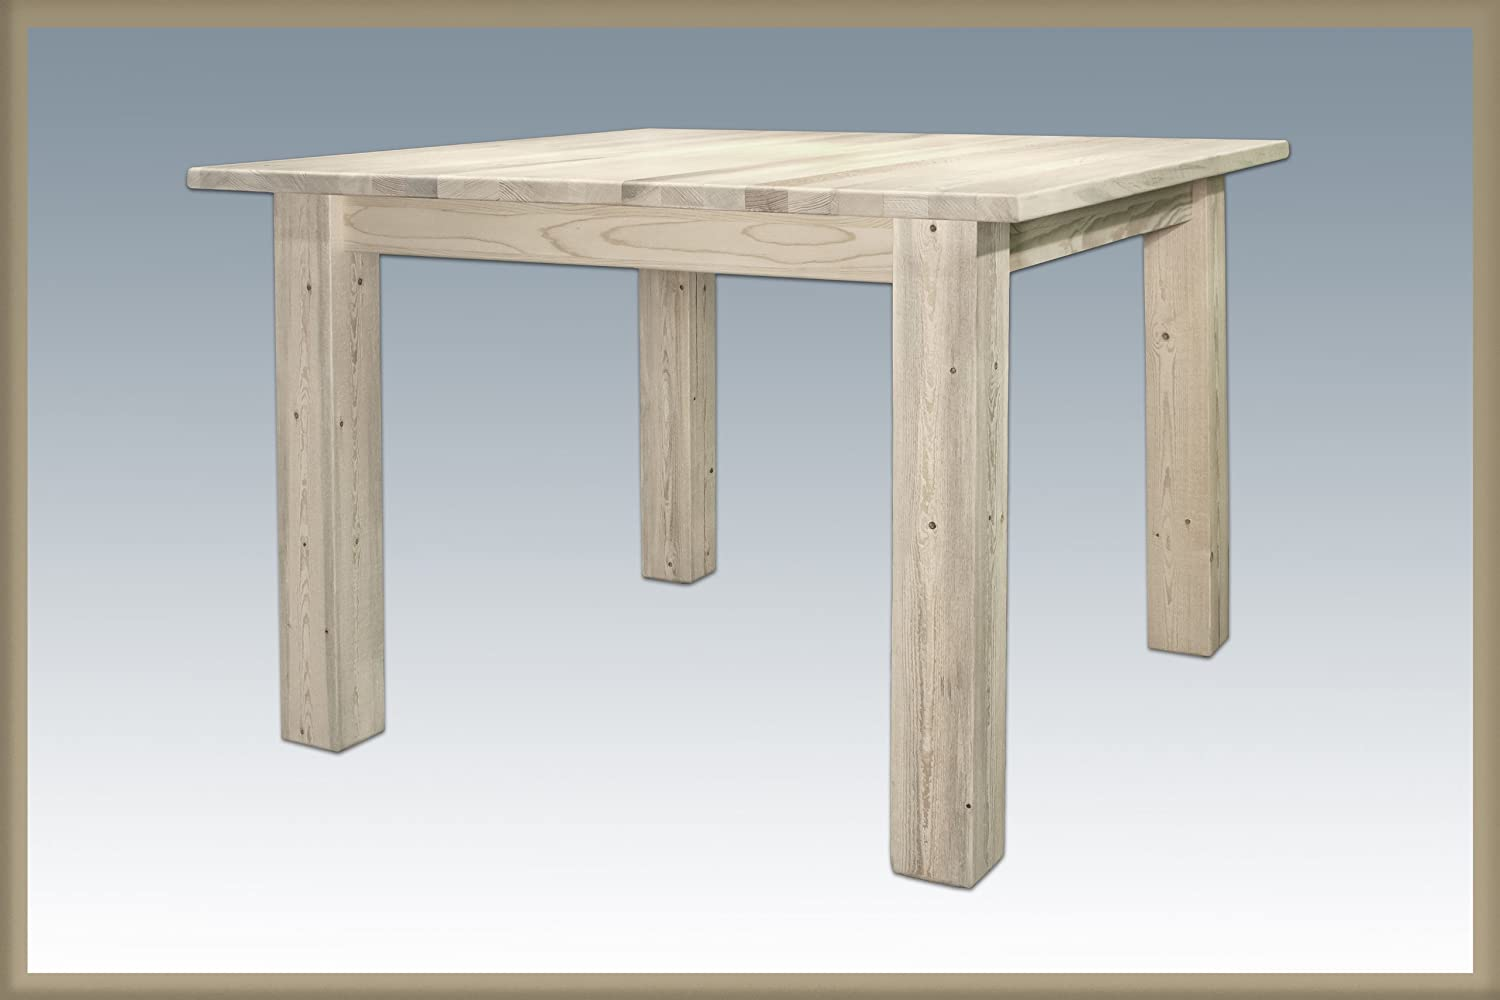 Montana Woodworks Hometead Collection Square 4 Post Dining Table, Ready to Finish